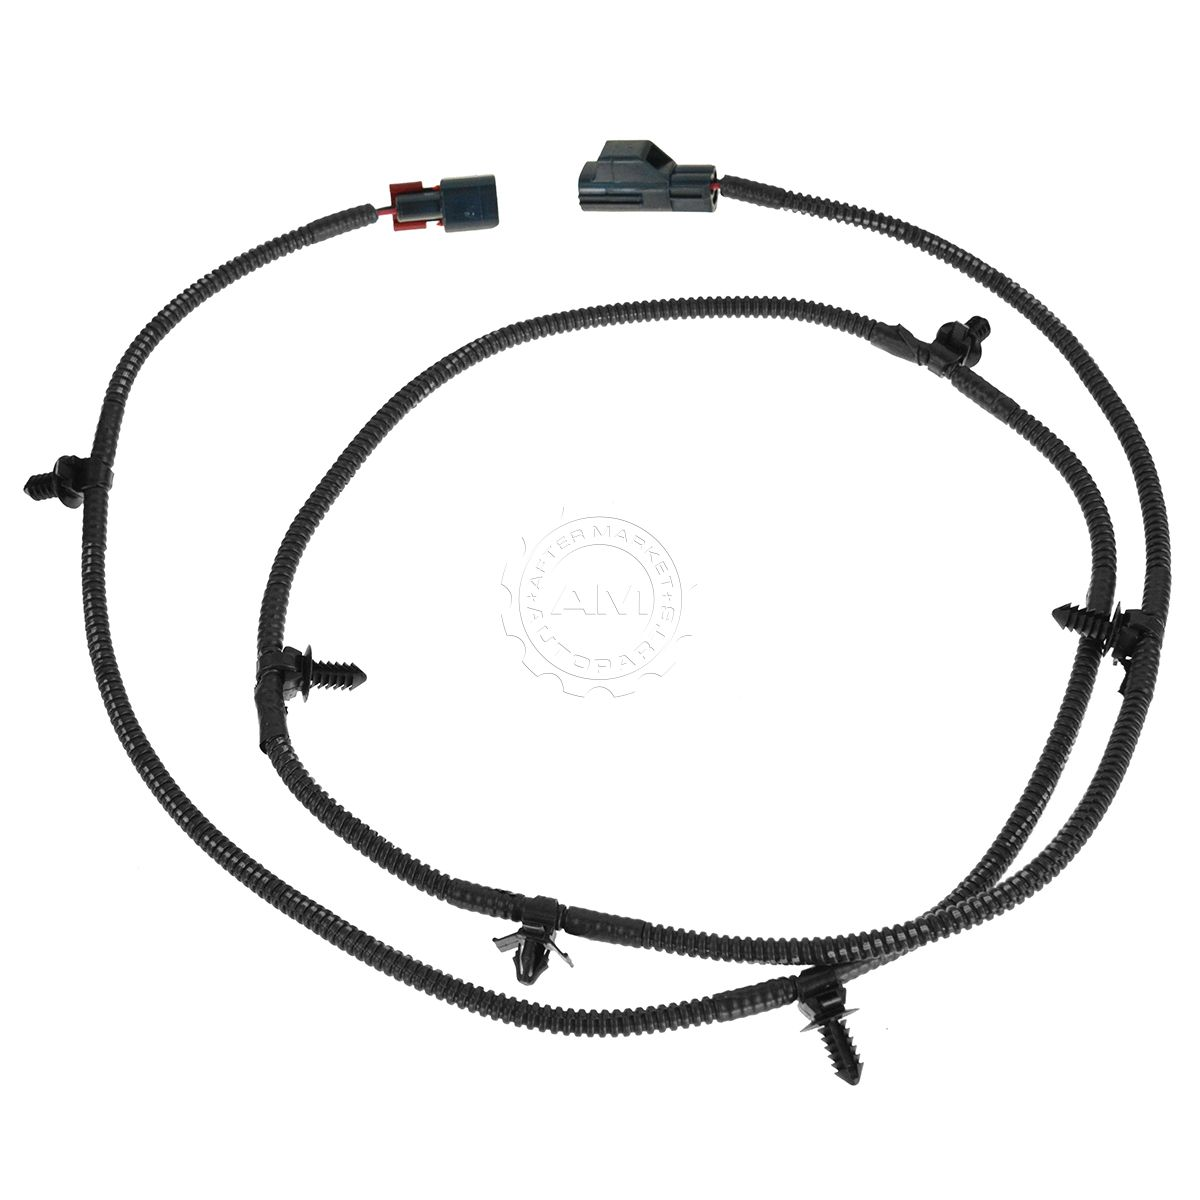 Mopar Under Hood Lamp Light Wiring Harness For Chrysler Dodge Jeep 2002 Town And Country Engine Car